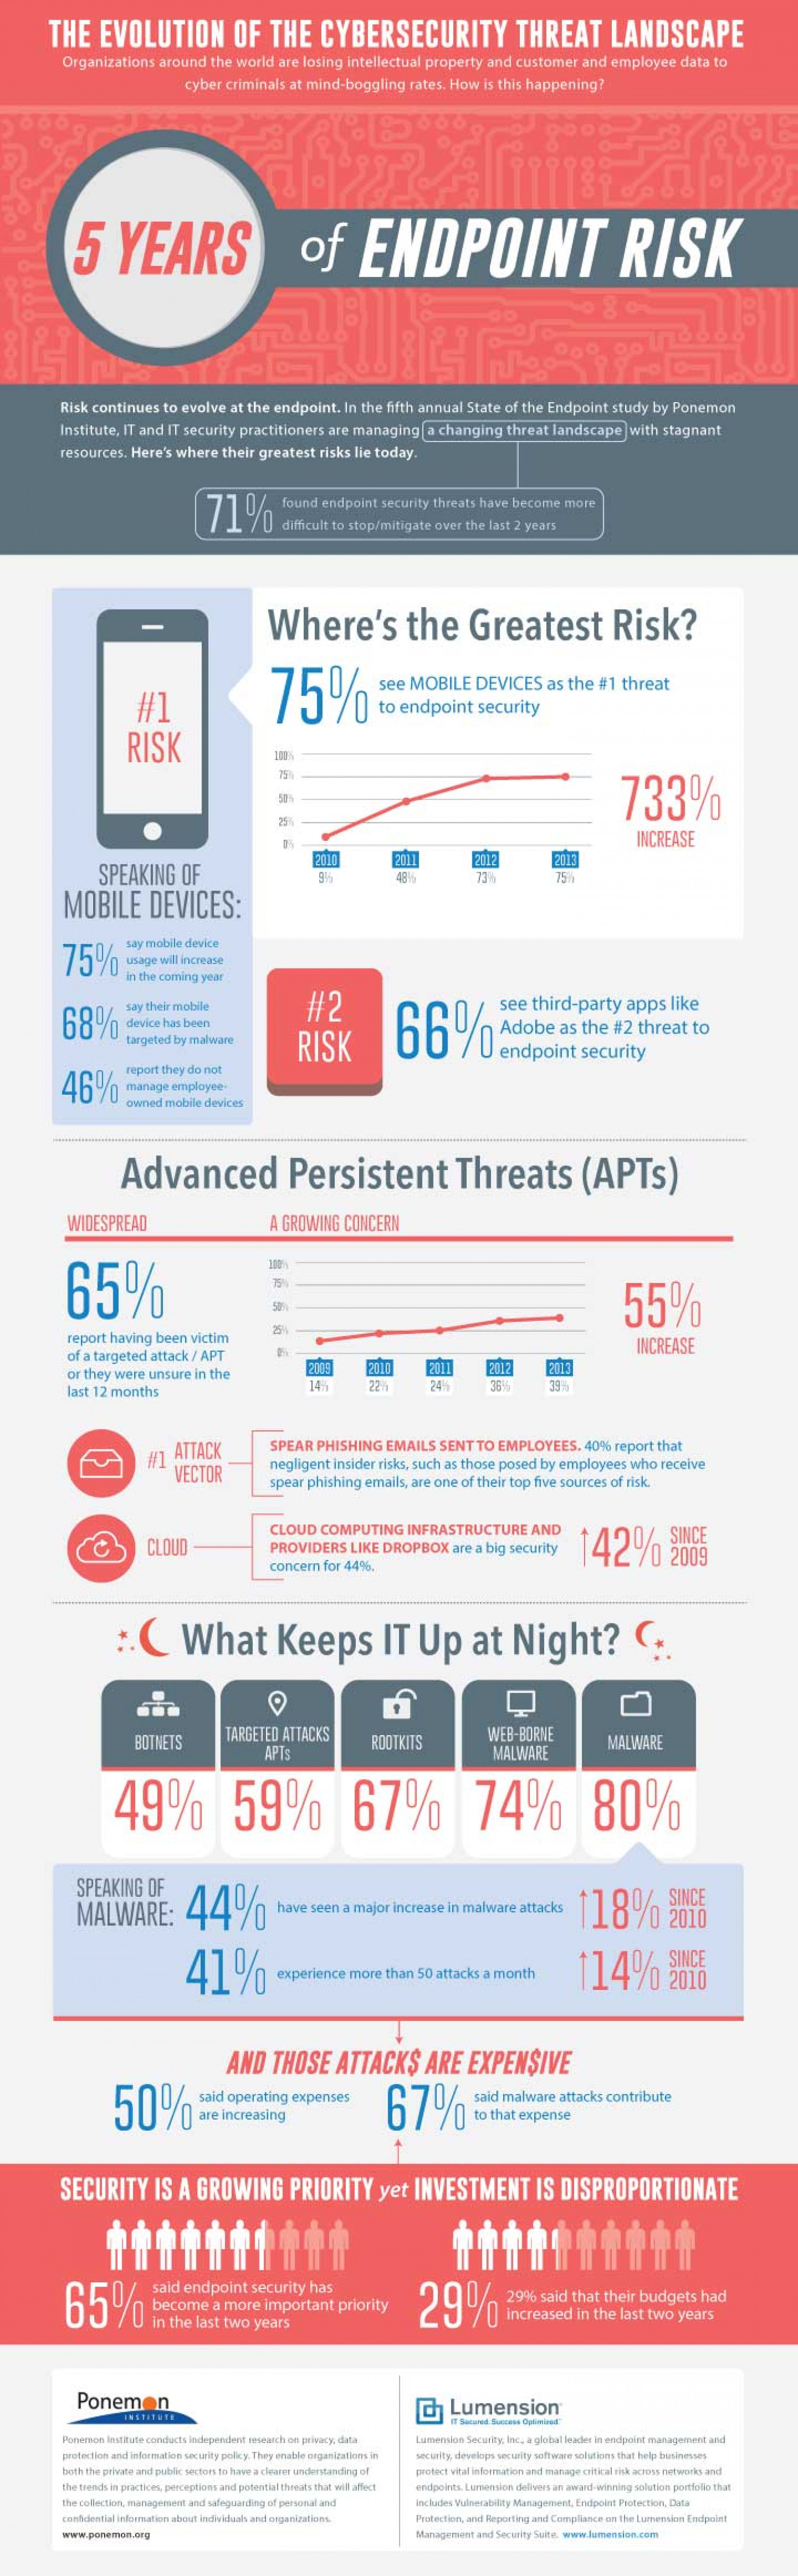 5 Years of Endpoint Risk Infographic